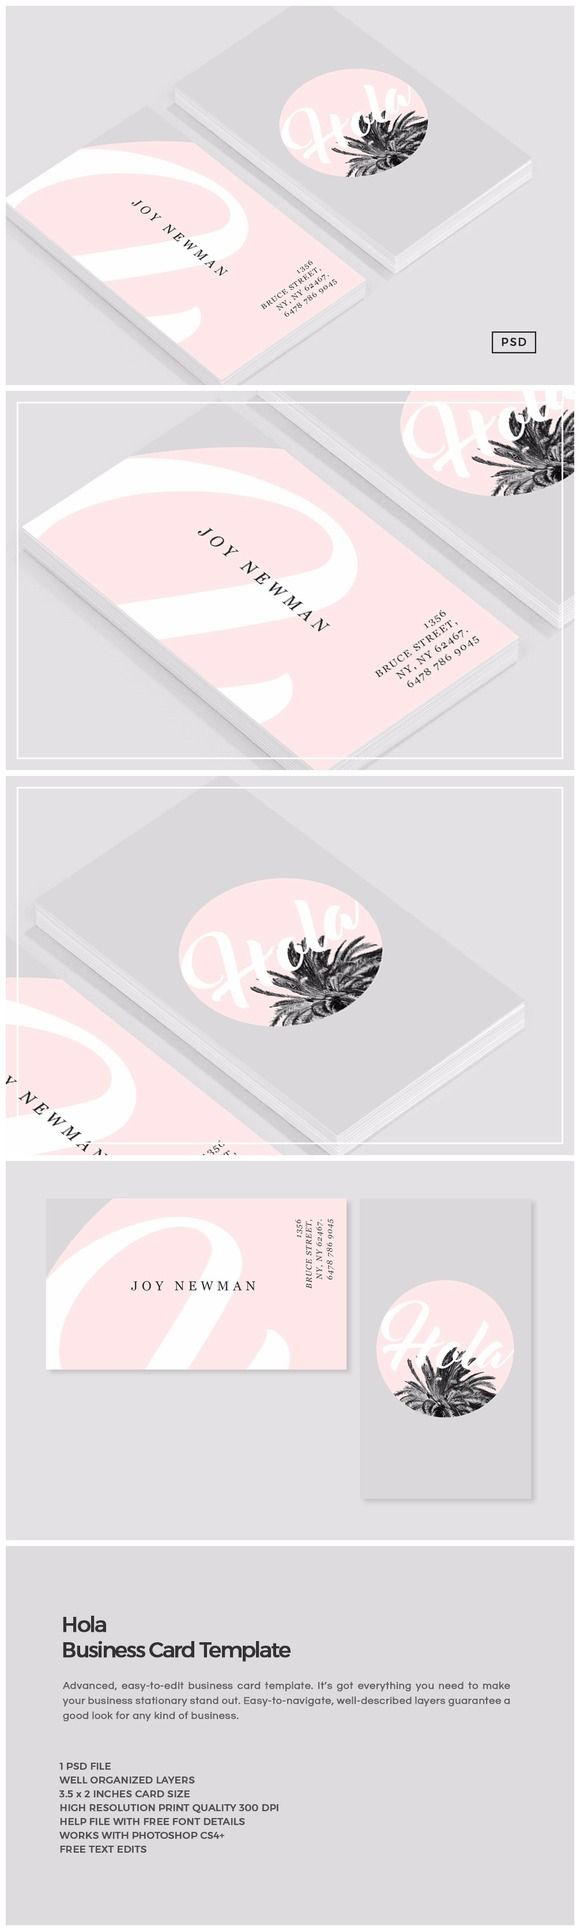 Hola Business Card Template https://creativemarket.com/MeeraG/944000-Hola-Business-Card-Template #design #art #graphicdesign